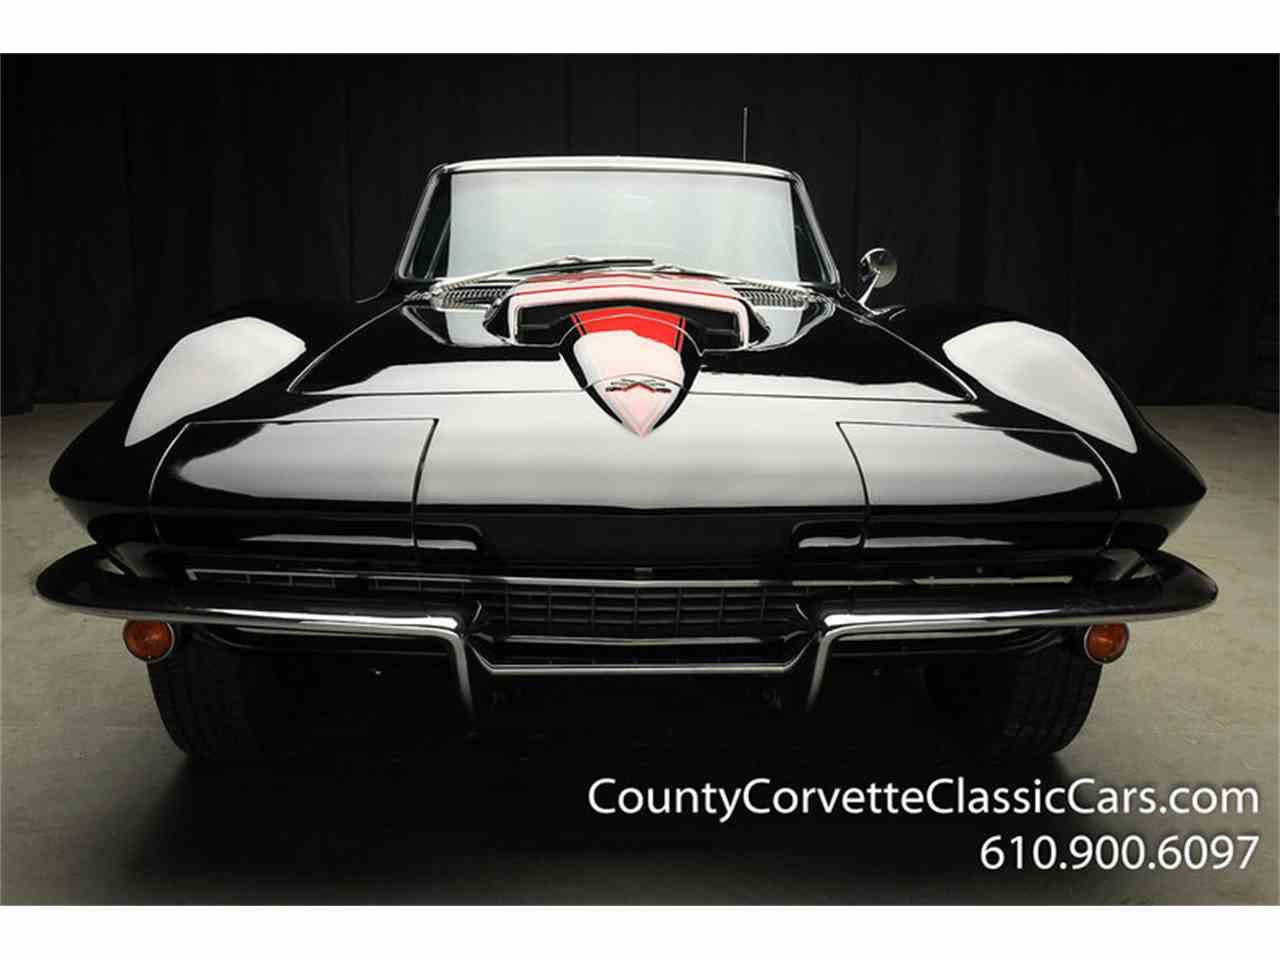 1967 Chevrolet Corvette - CC-982367